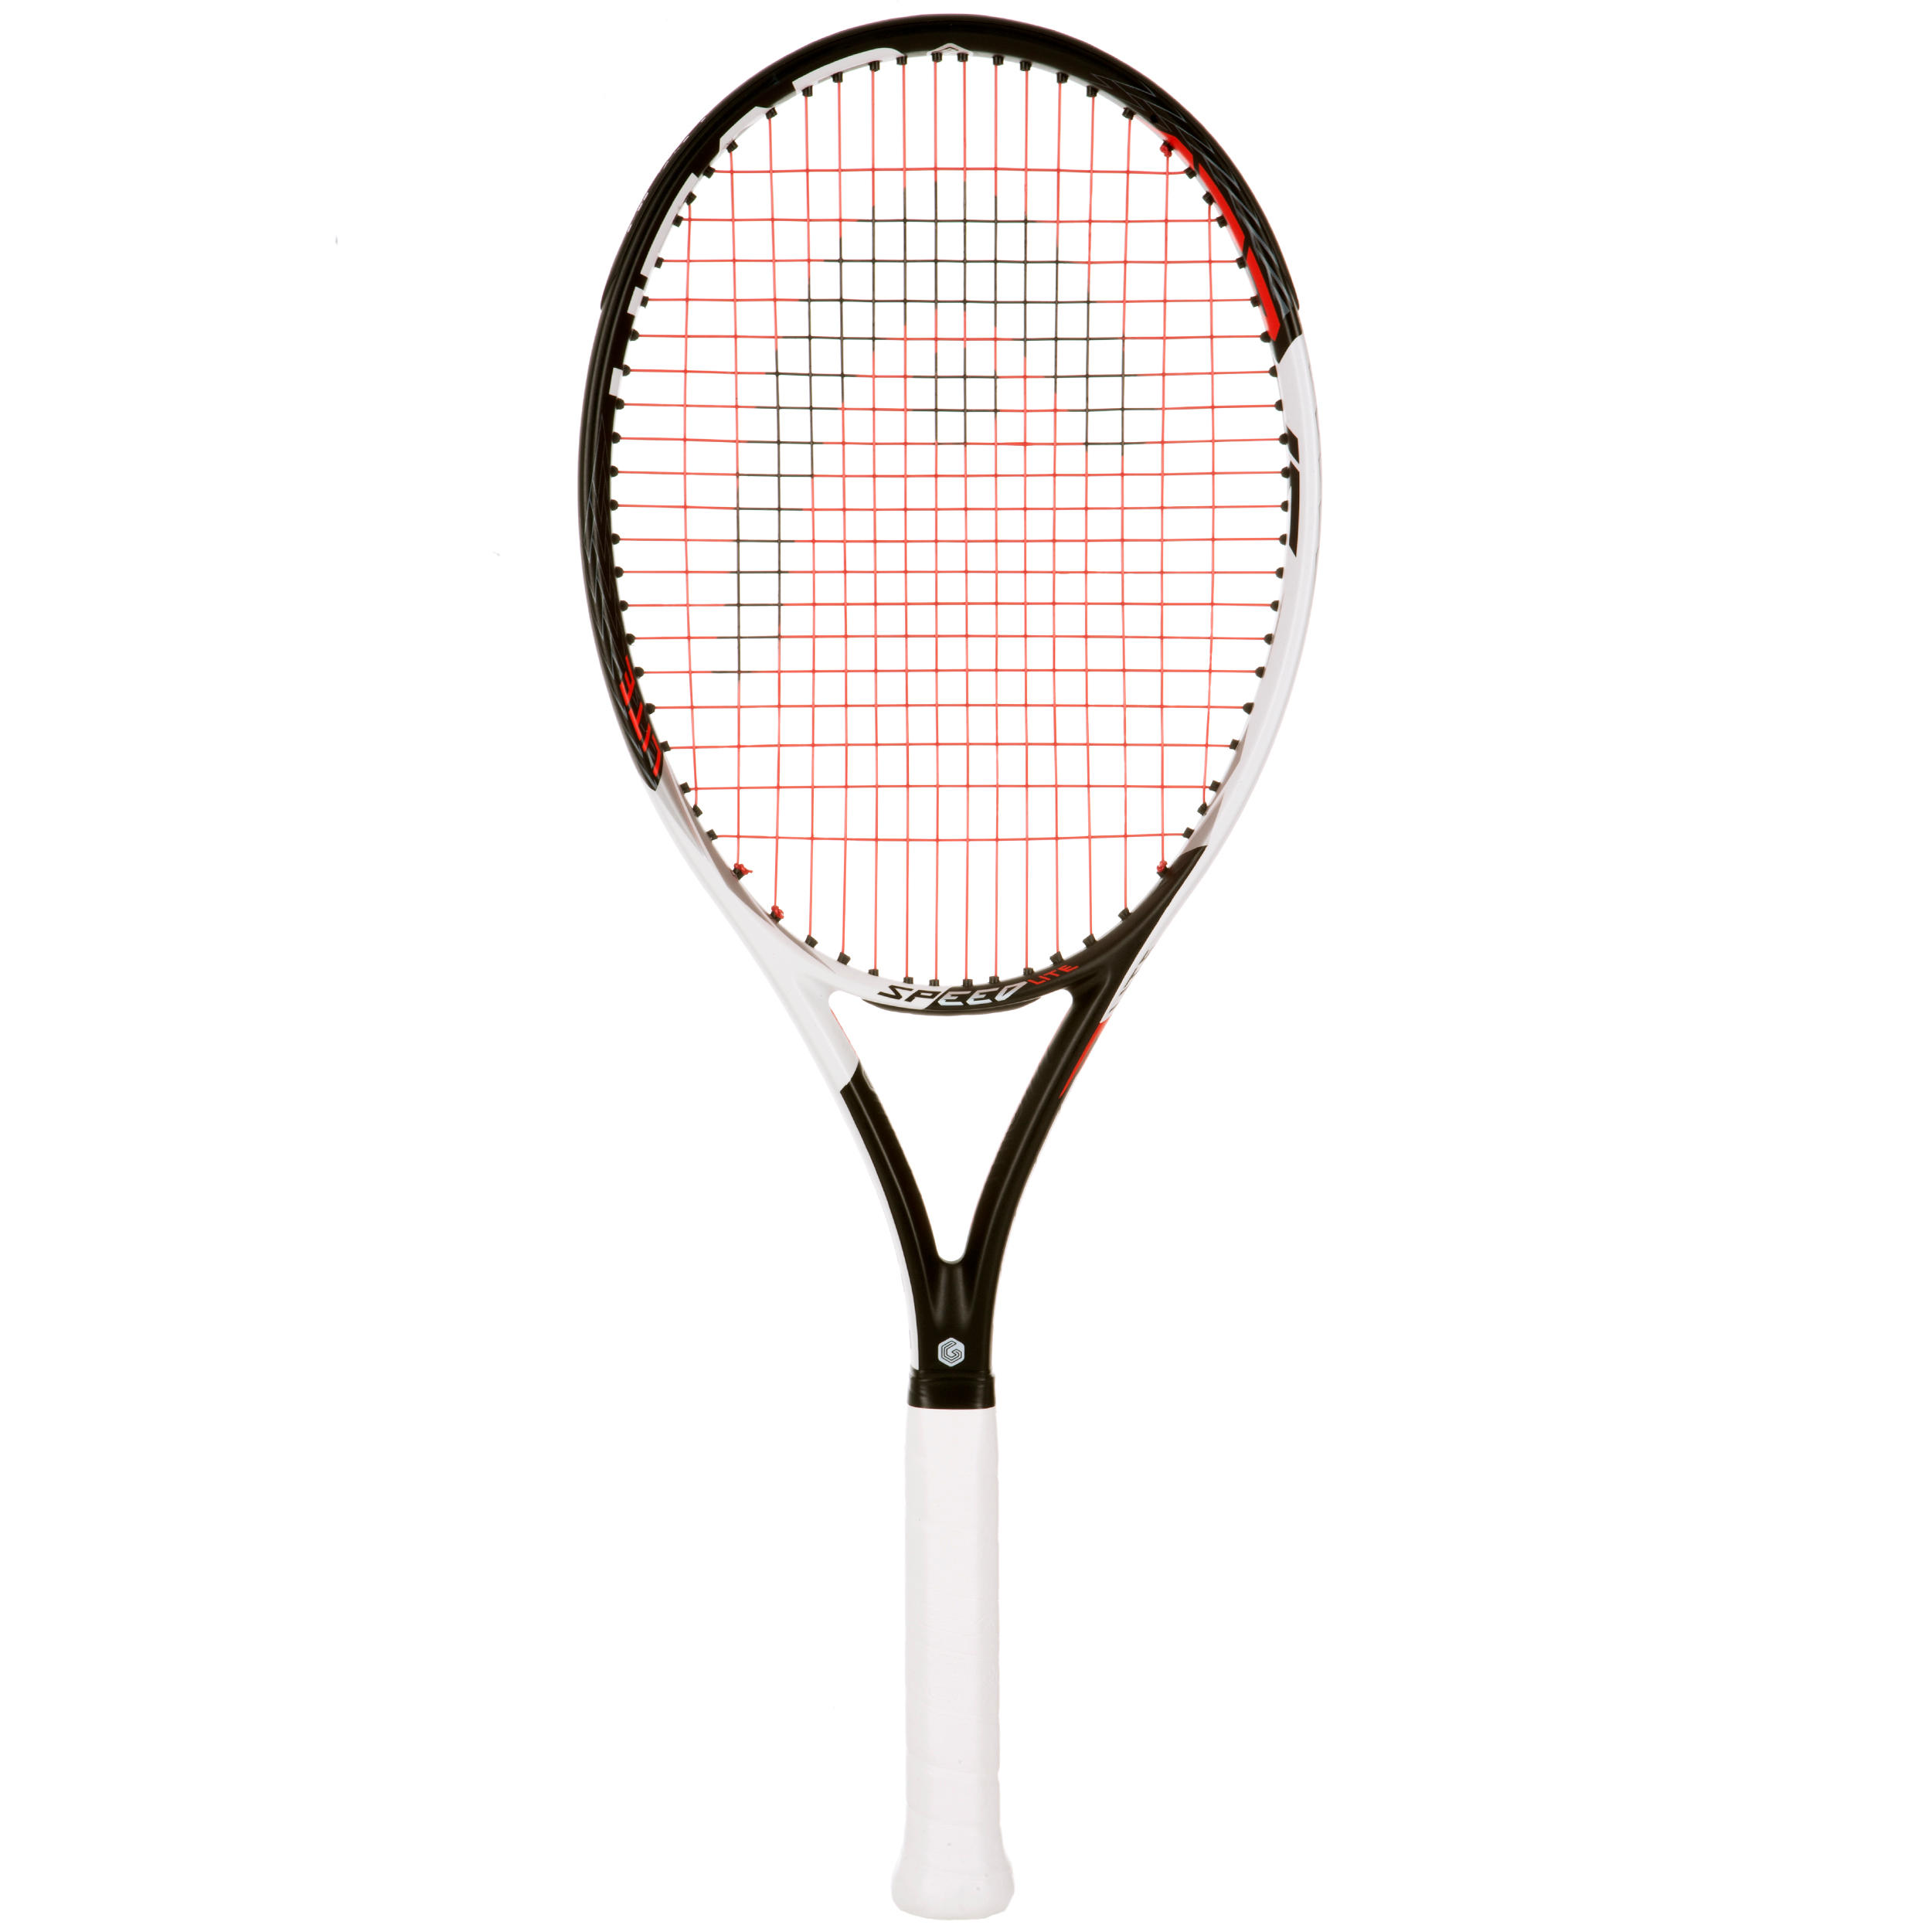 Head Tennisracket kinderen Speed 26 inch zwart/wit